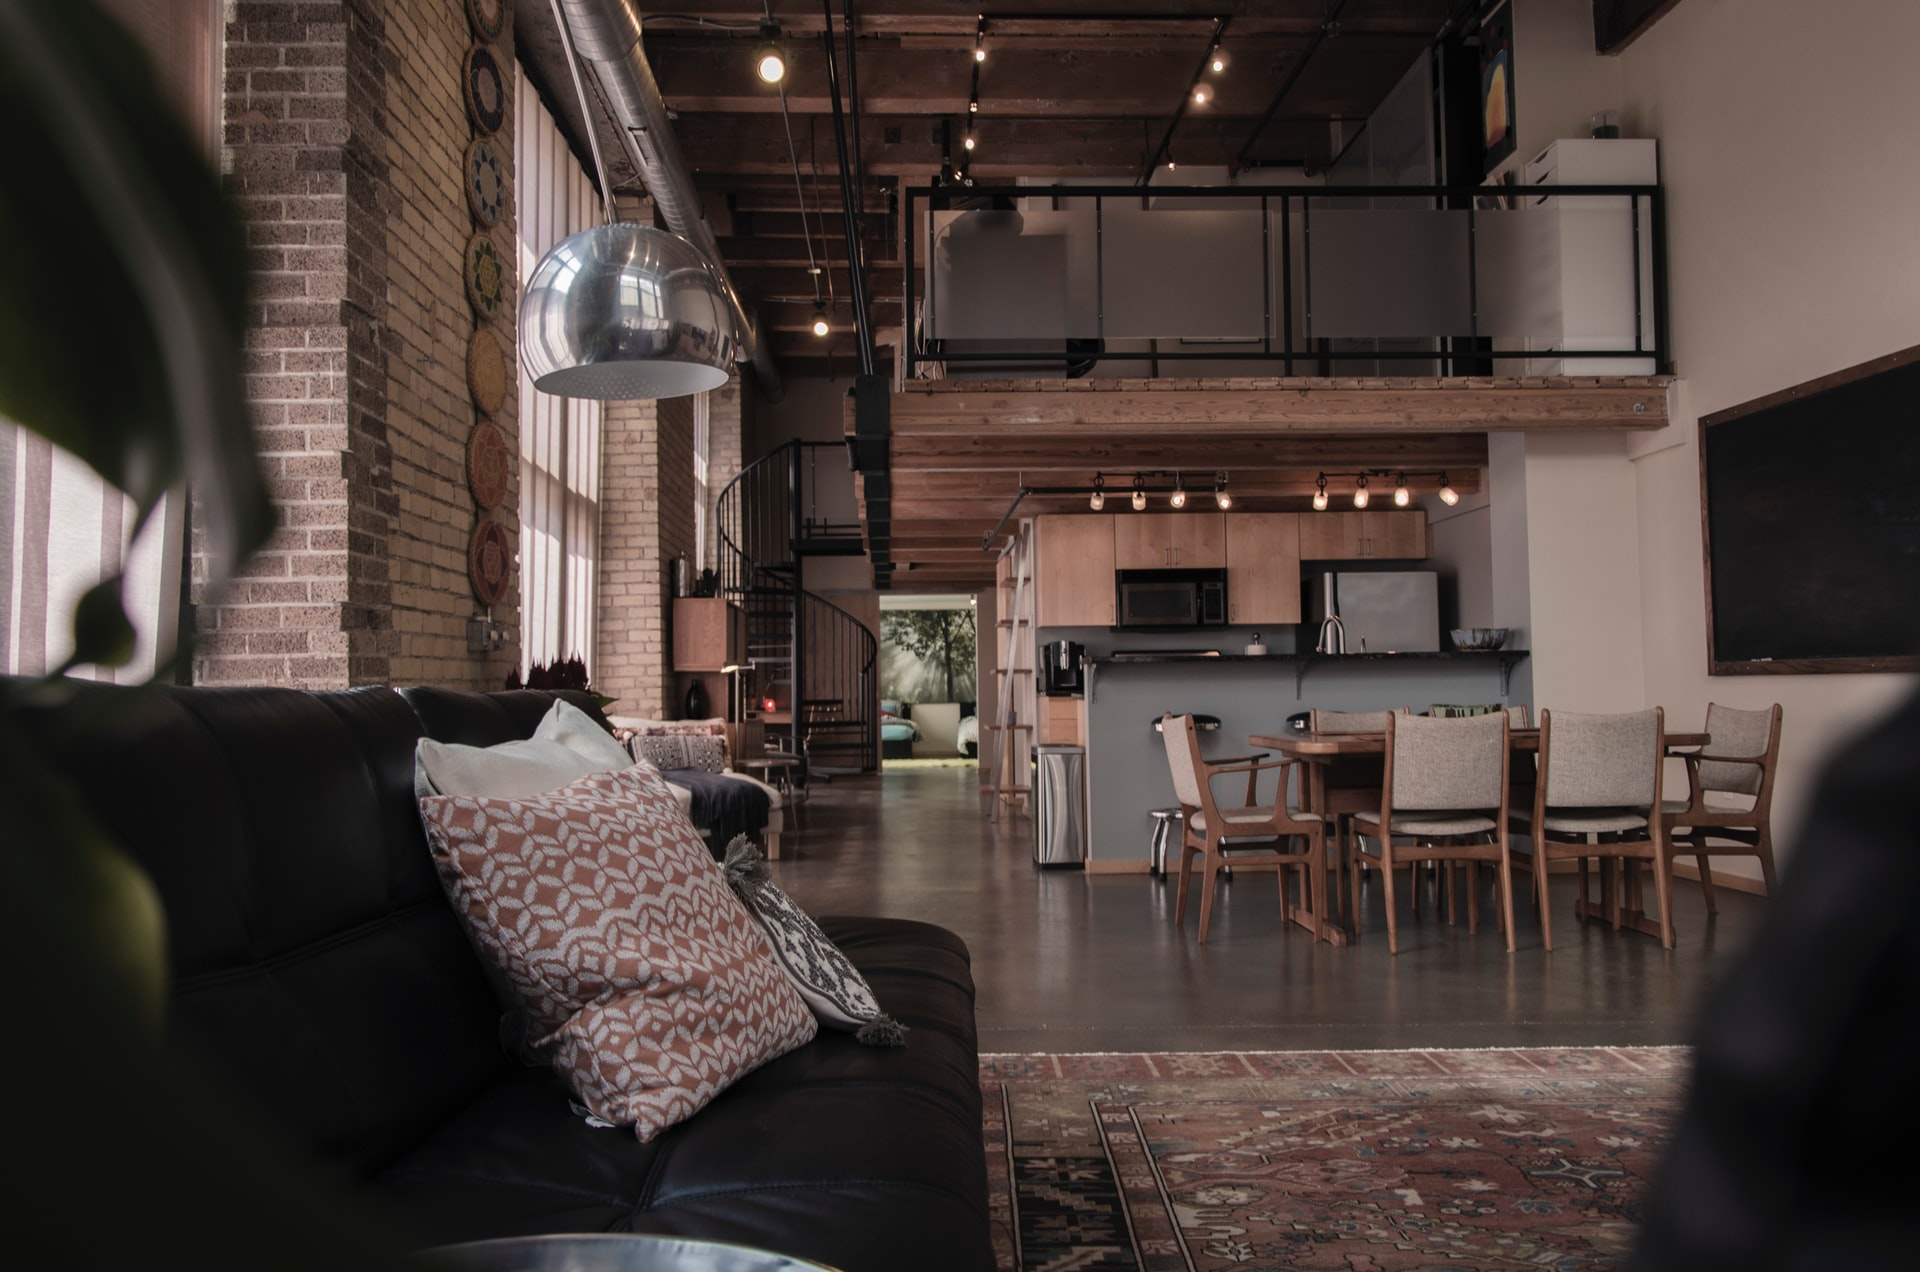 How Can You Install a Loft in Your Home?